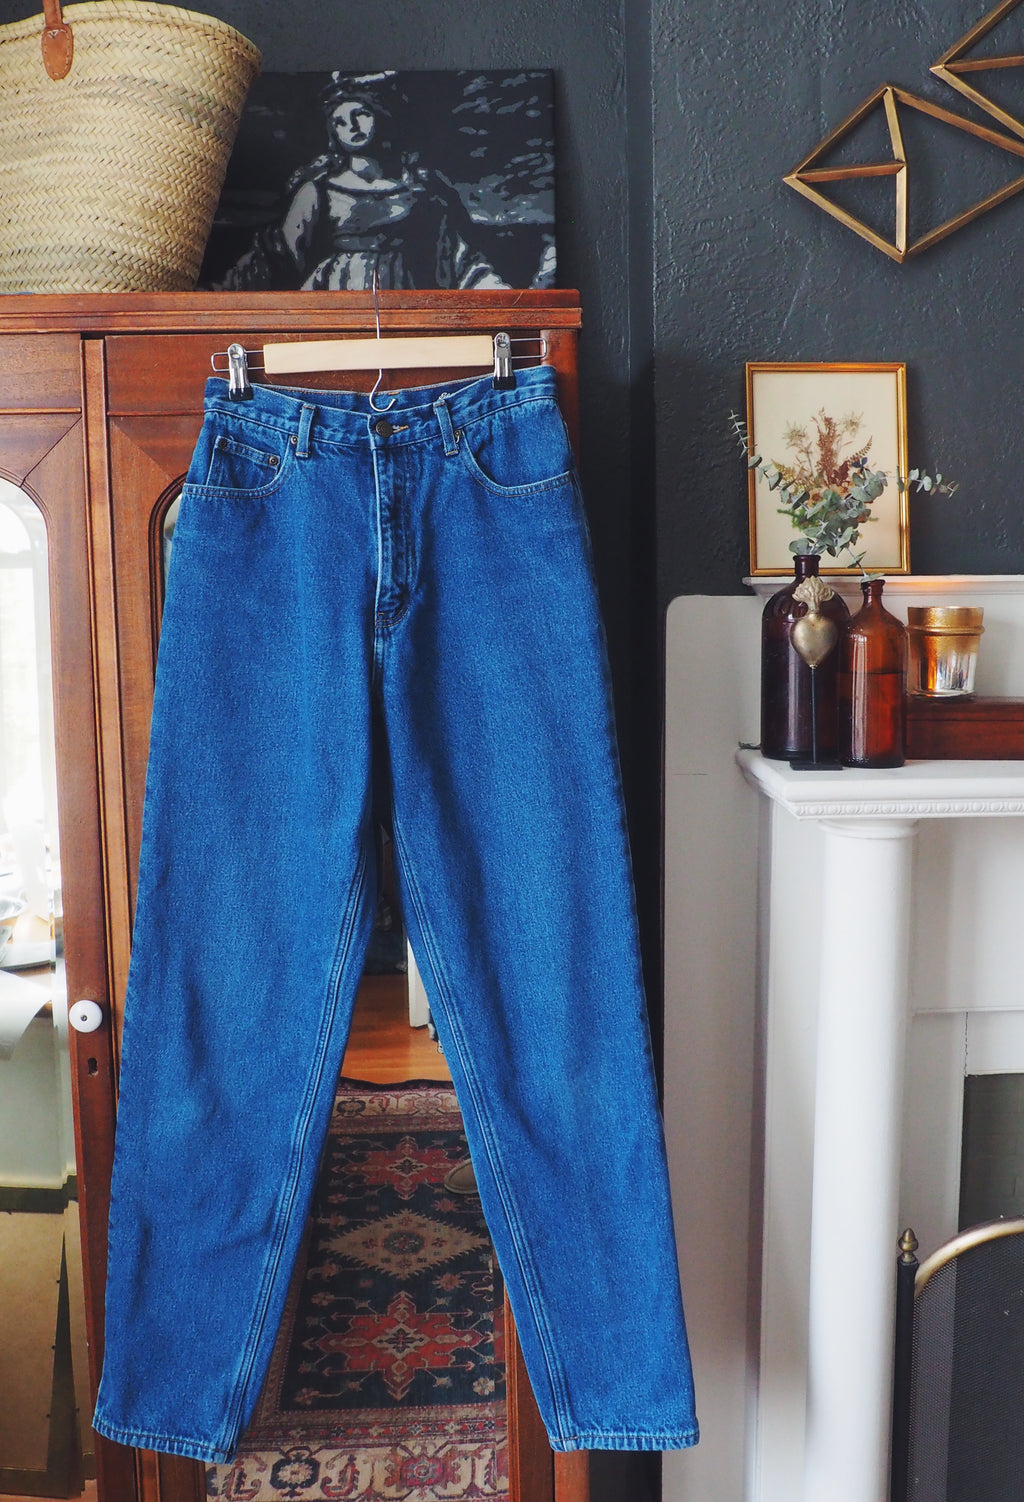 Eddie Bauer High-Waisted Jeans